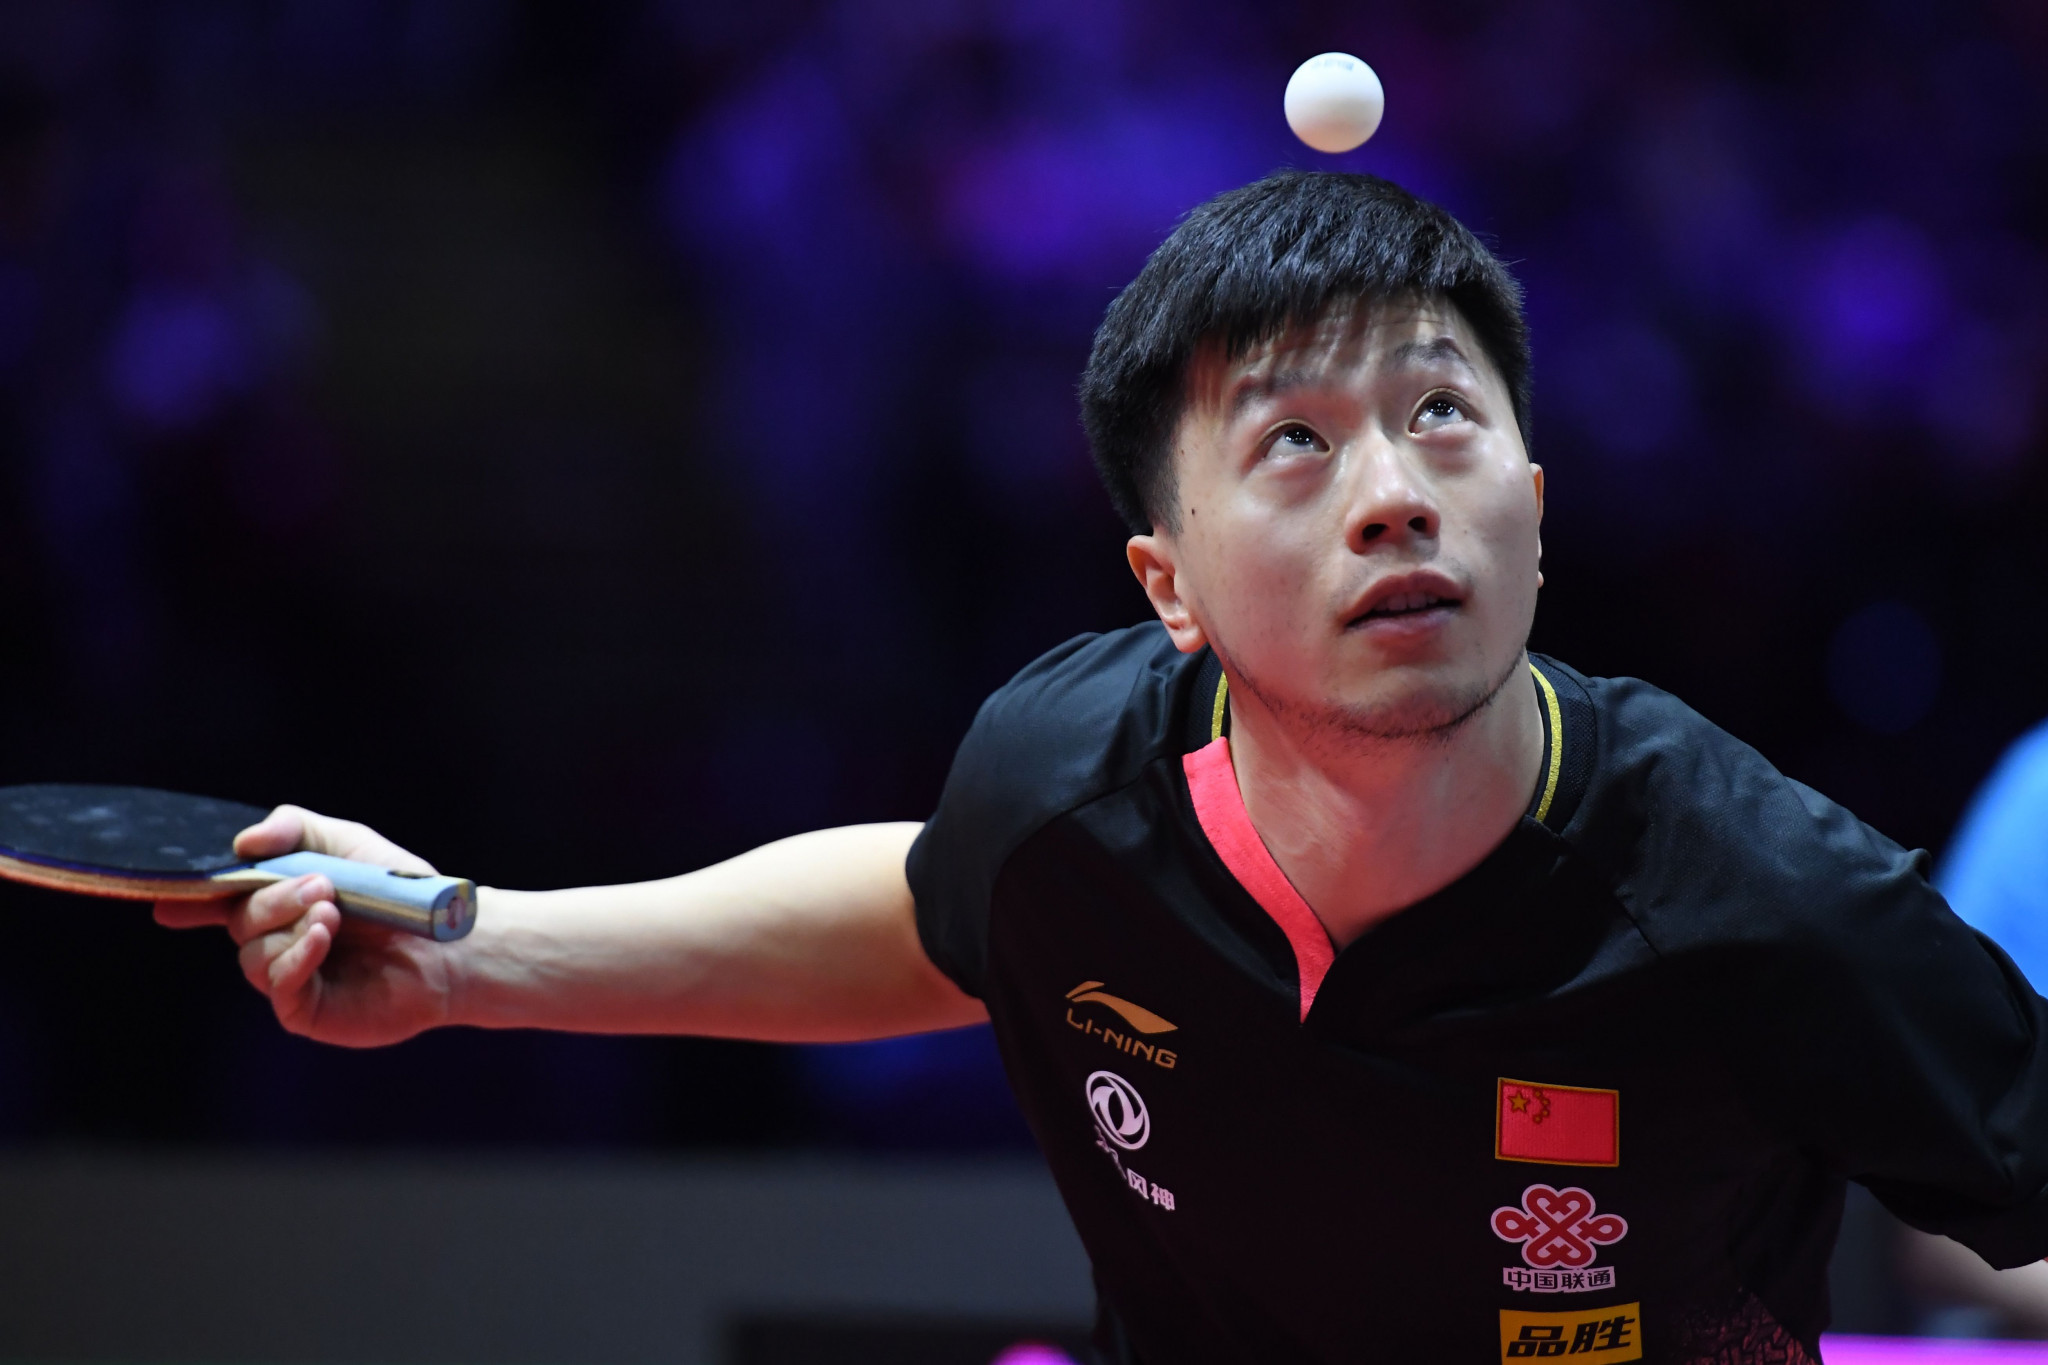 World champions Ma and Liu nominated for top prizes at 2019 ITTF Star Awards